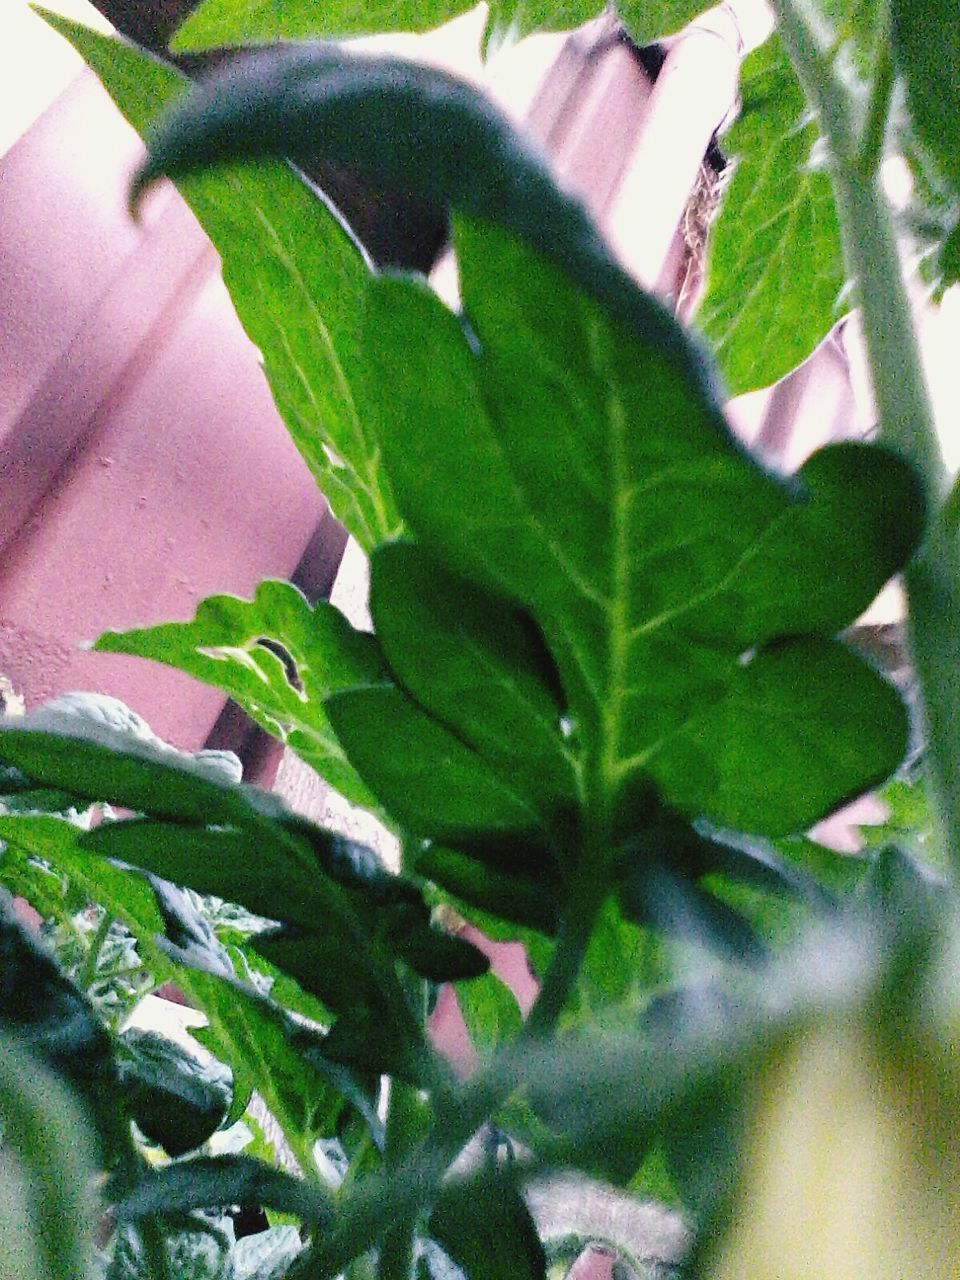 leaf, plant, growth, green color, close-up, no people, day, nature, outdoors, freshness, animal themes